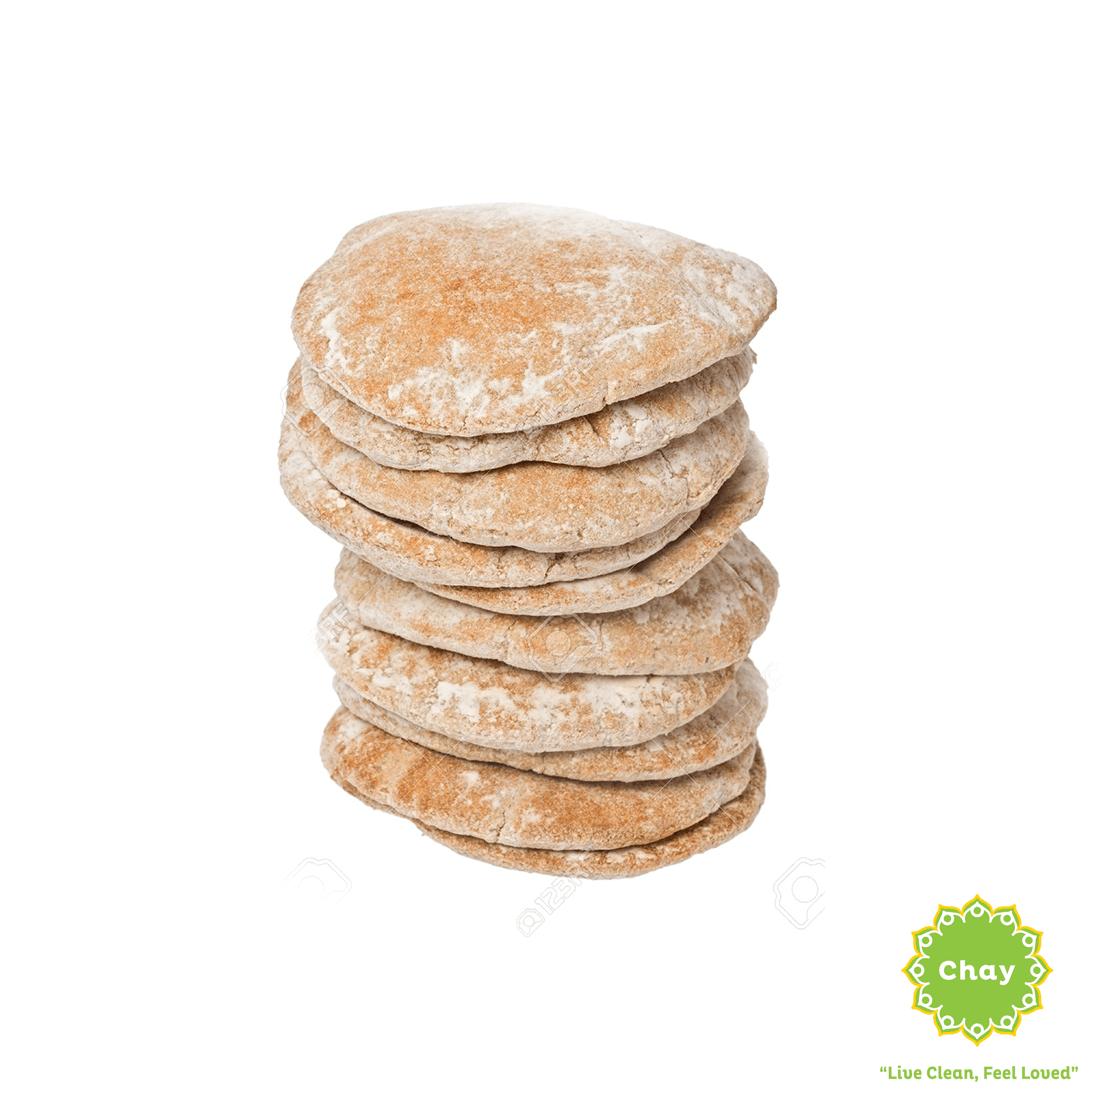 [BK008] Whole Wheat Pita Bread (6 pcs) (V) en Harvest Baking